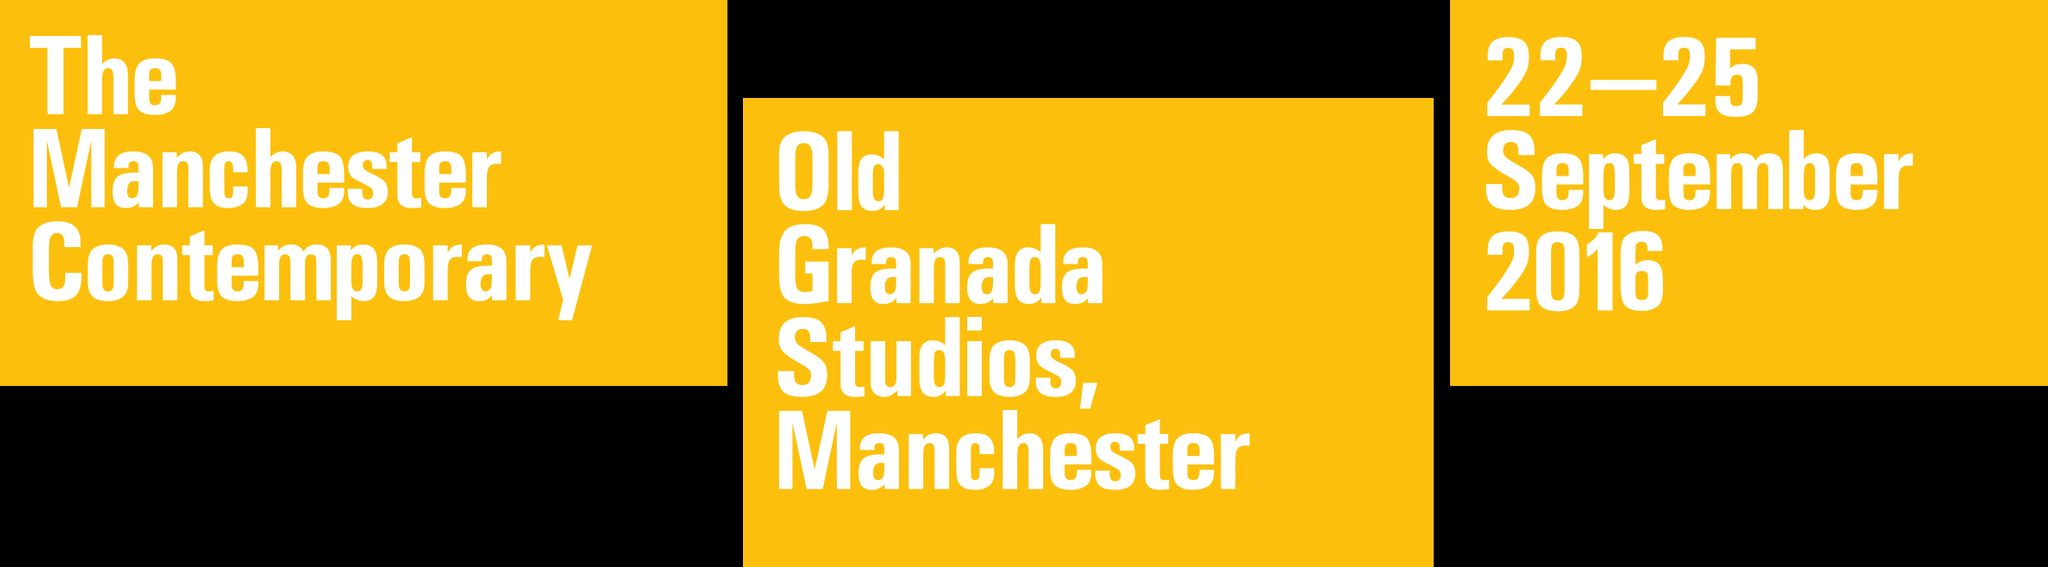 The Manchester Contemporary 2016